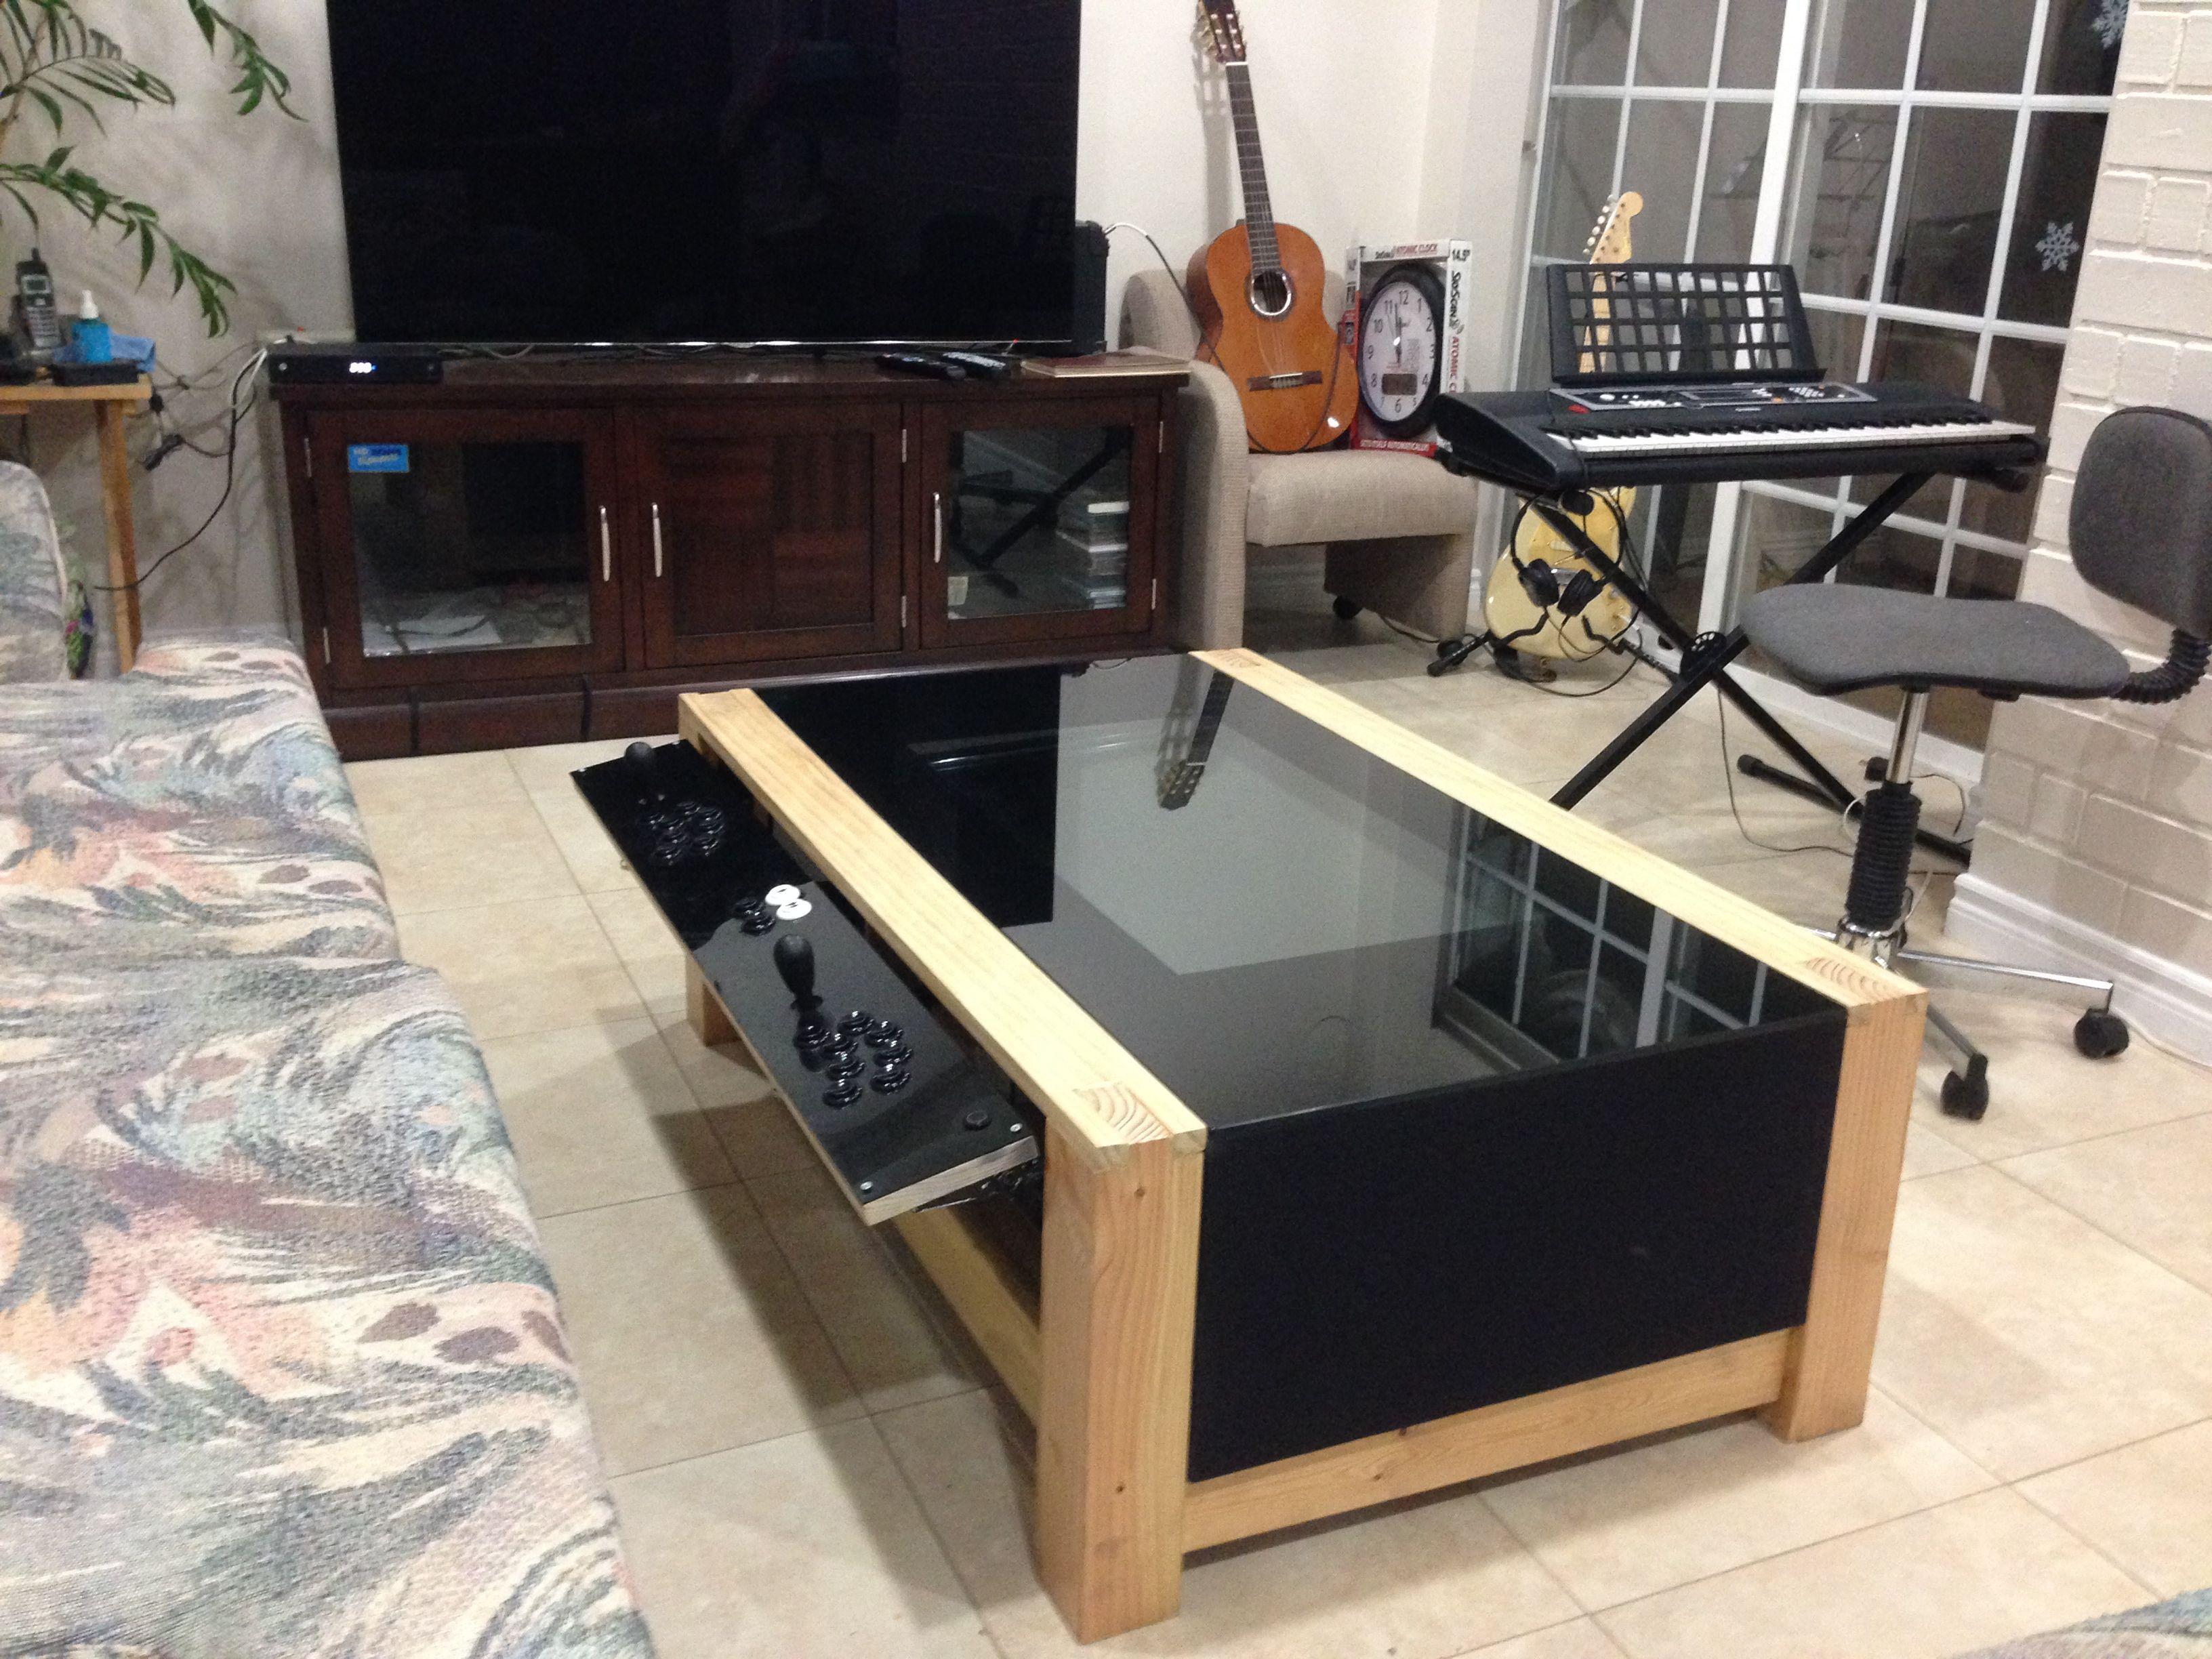 Geeky Coffee Tables Diy Arcade Coffee Table Video Games Pinterest Arcade